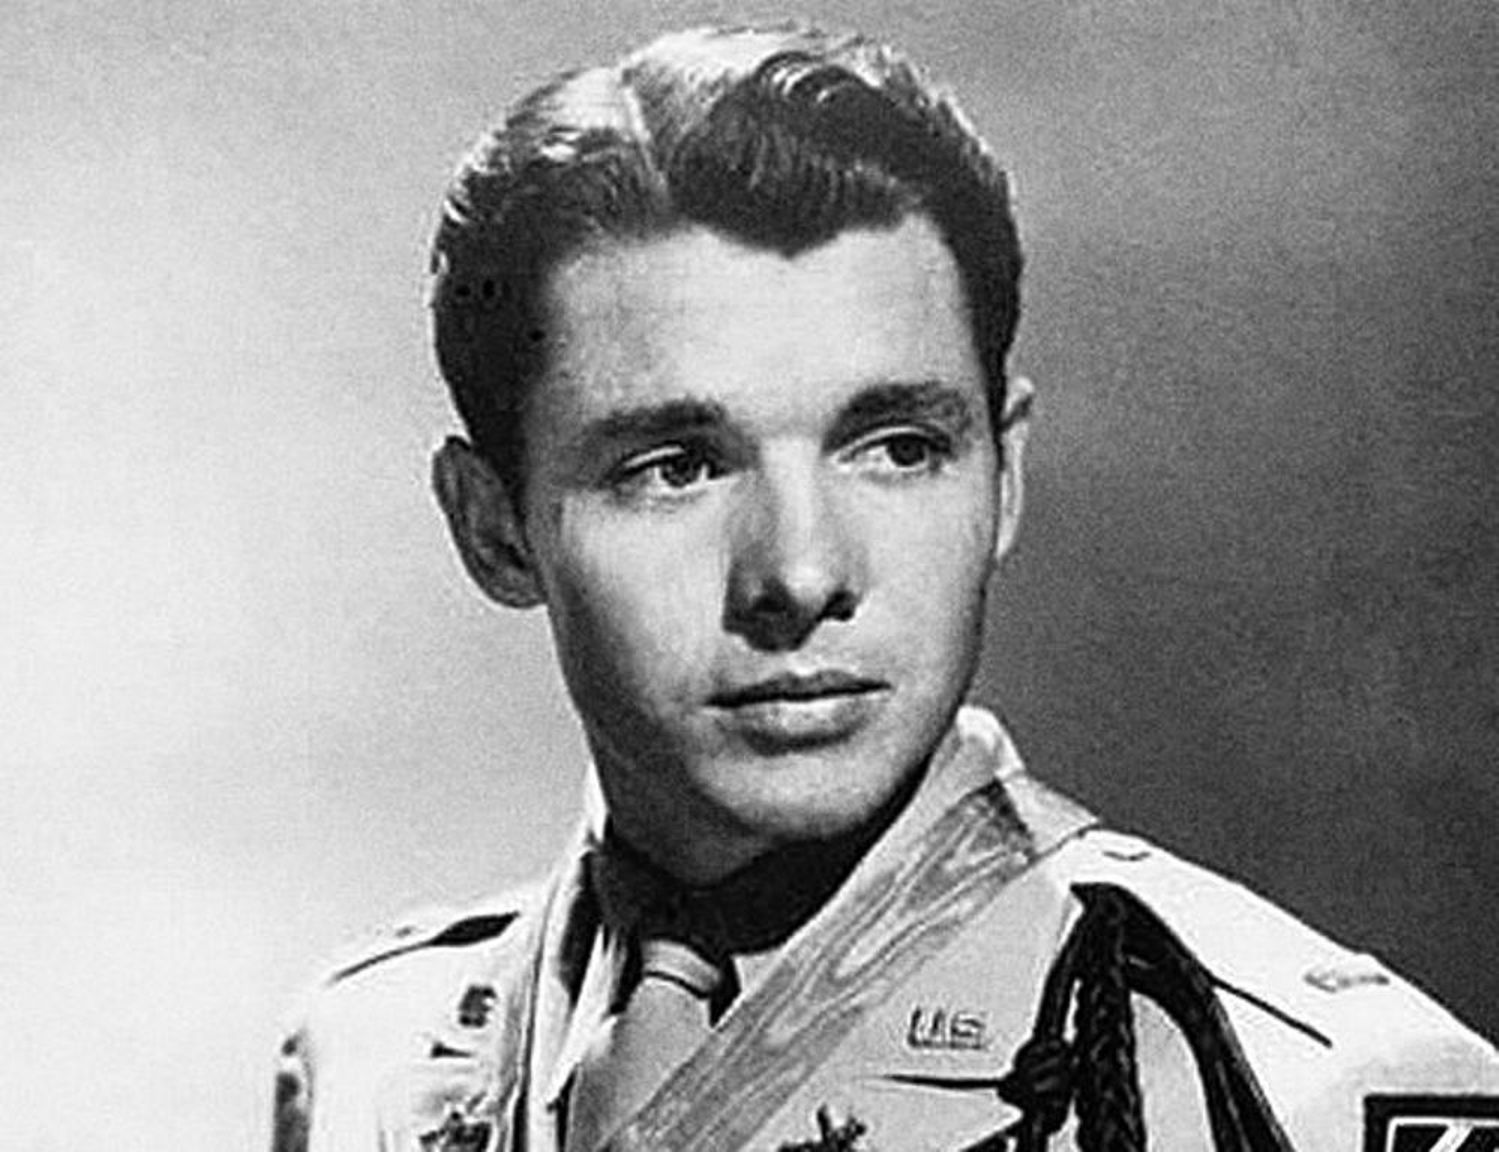 Audie Murphy In World War II - Audie